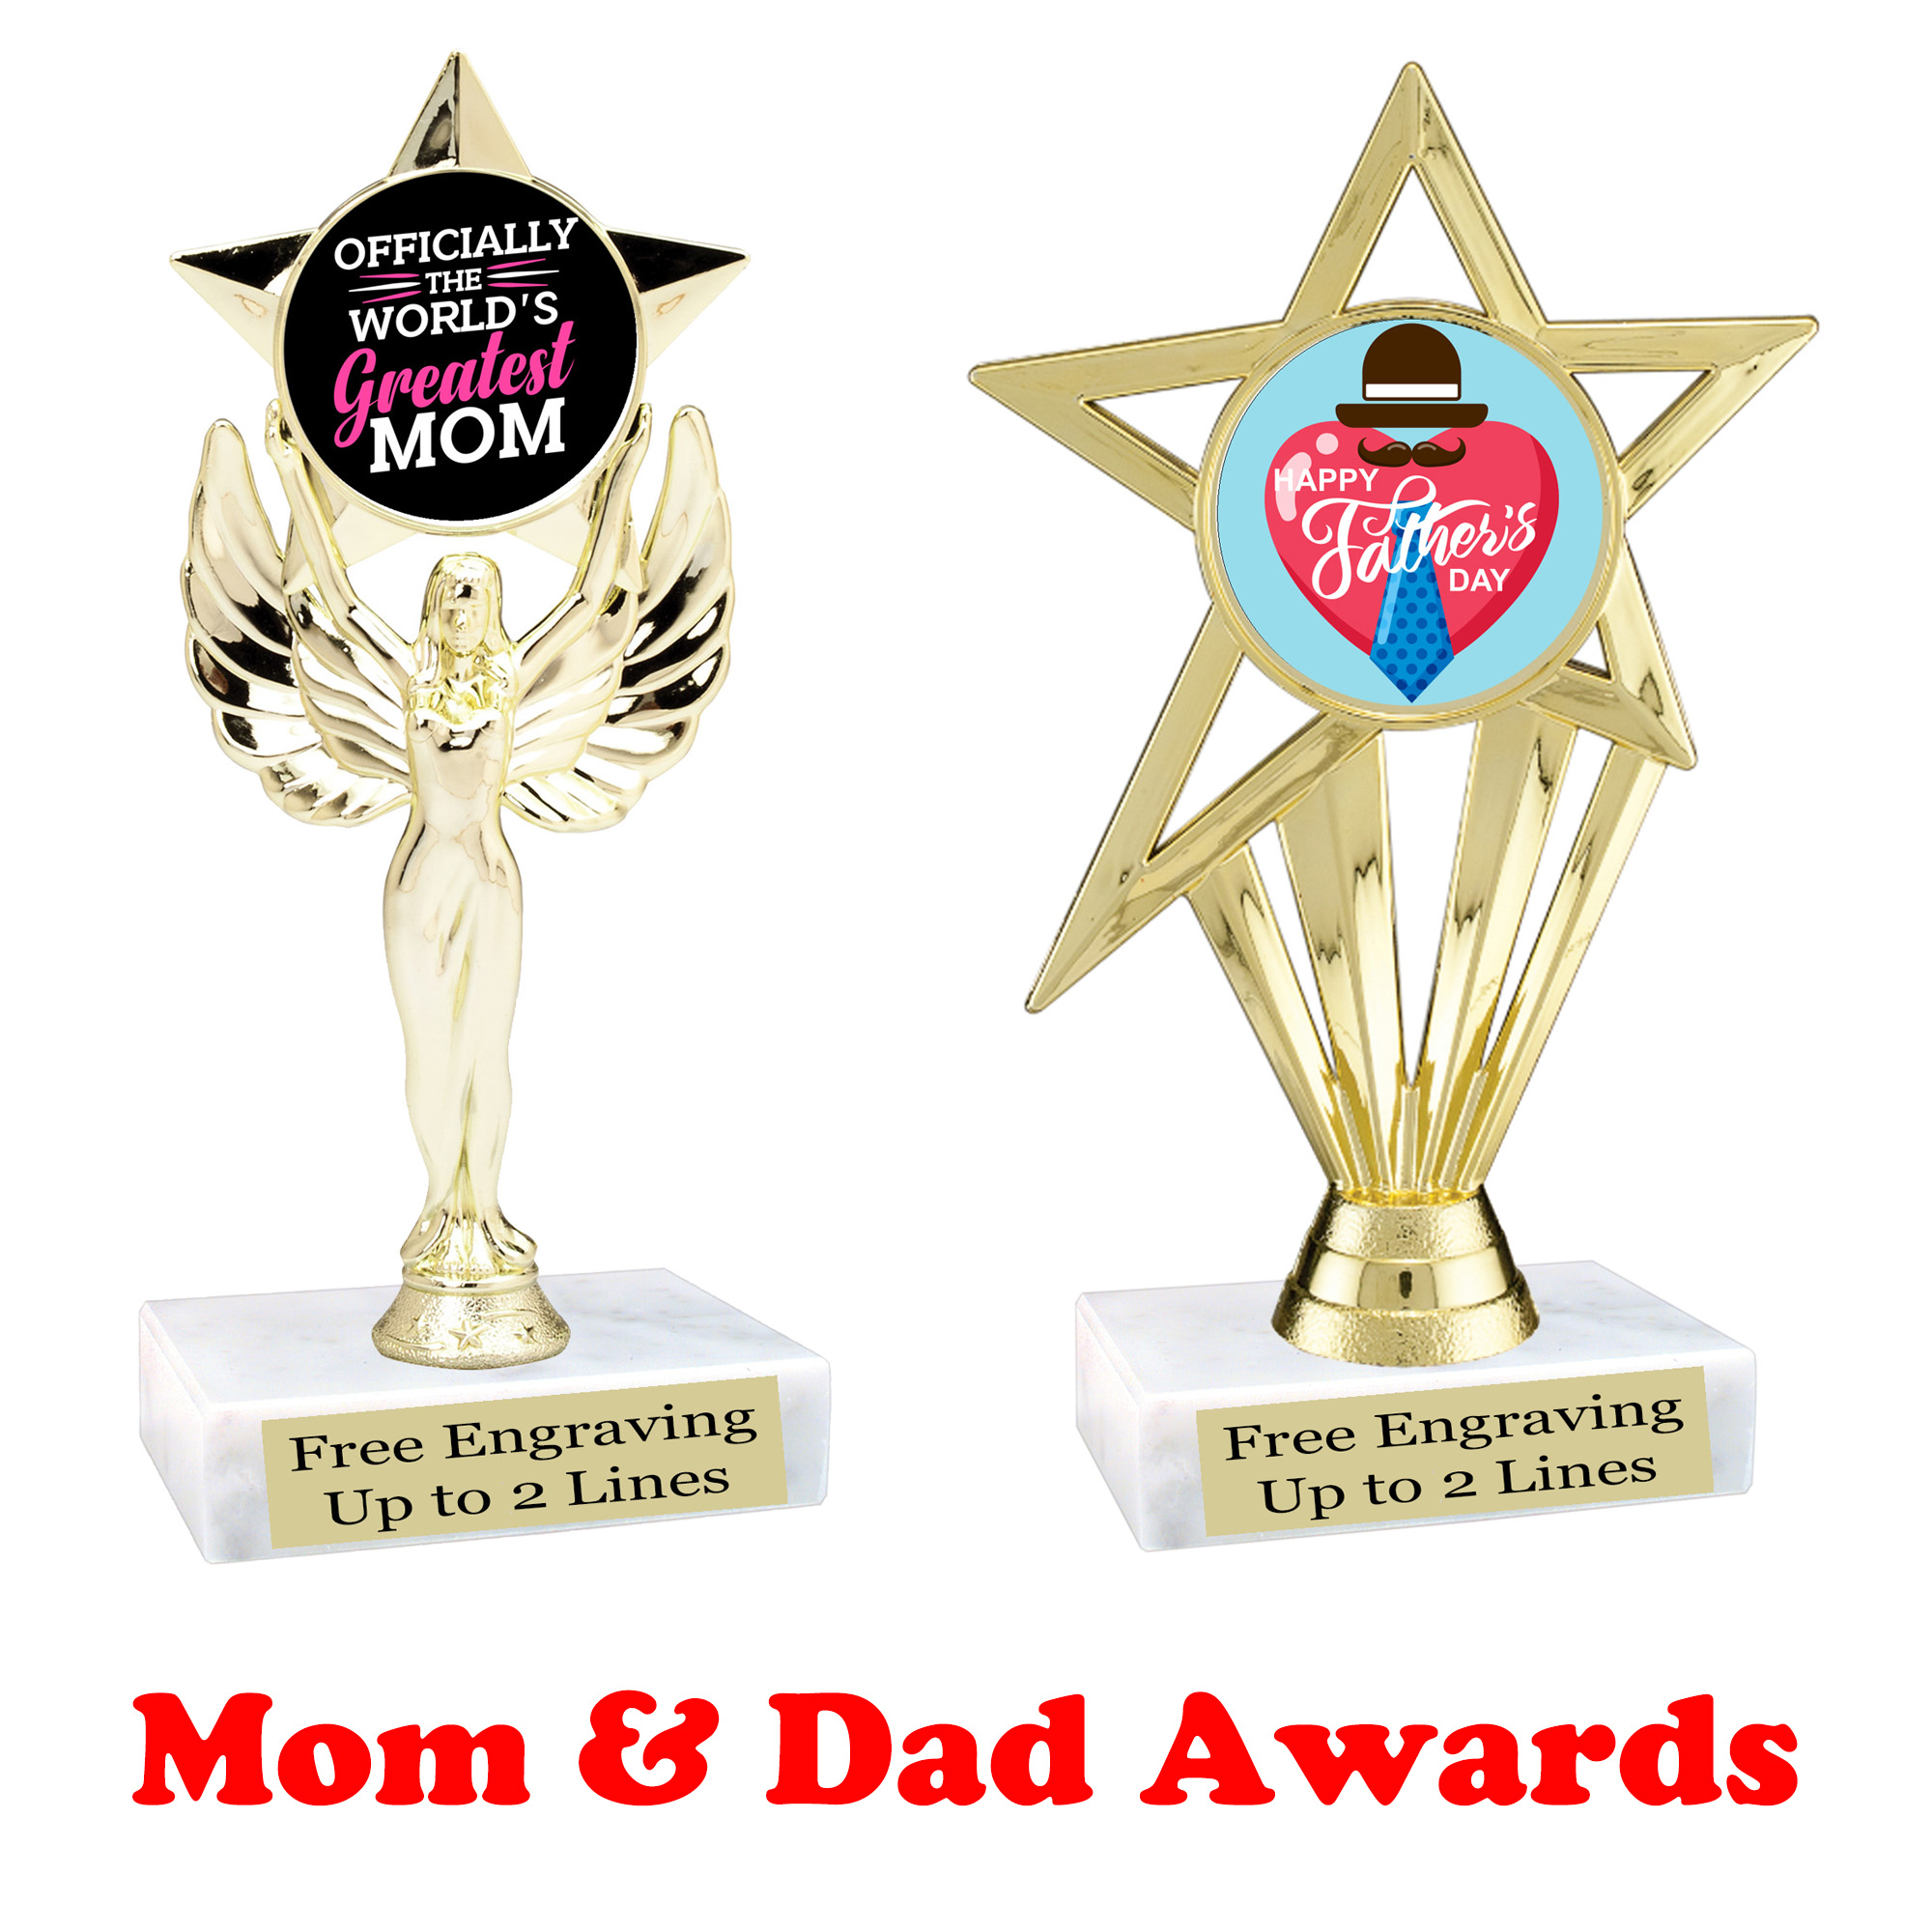 mom-and-dad-awards.jpg